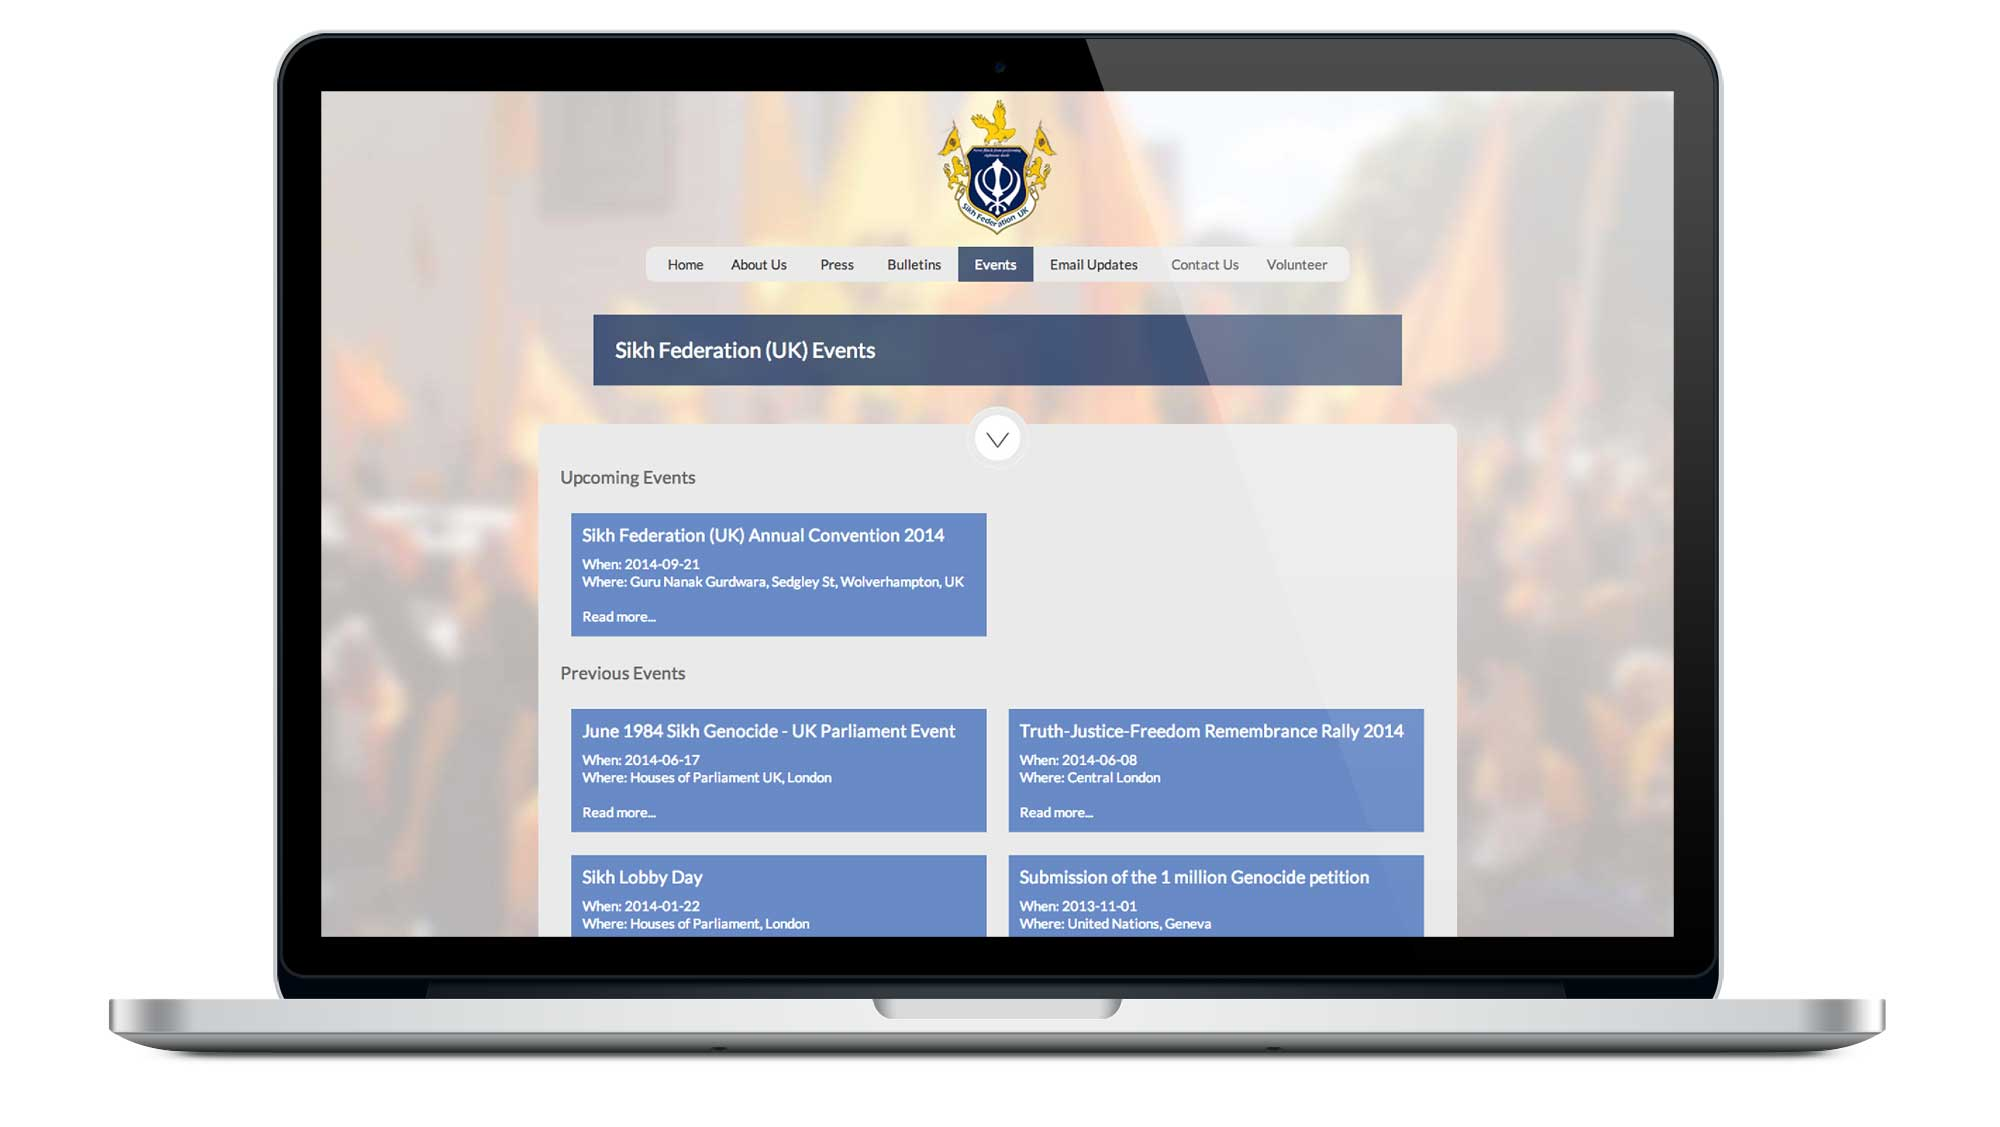 Sikh Federation UK Website Events Page